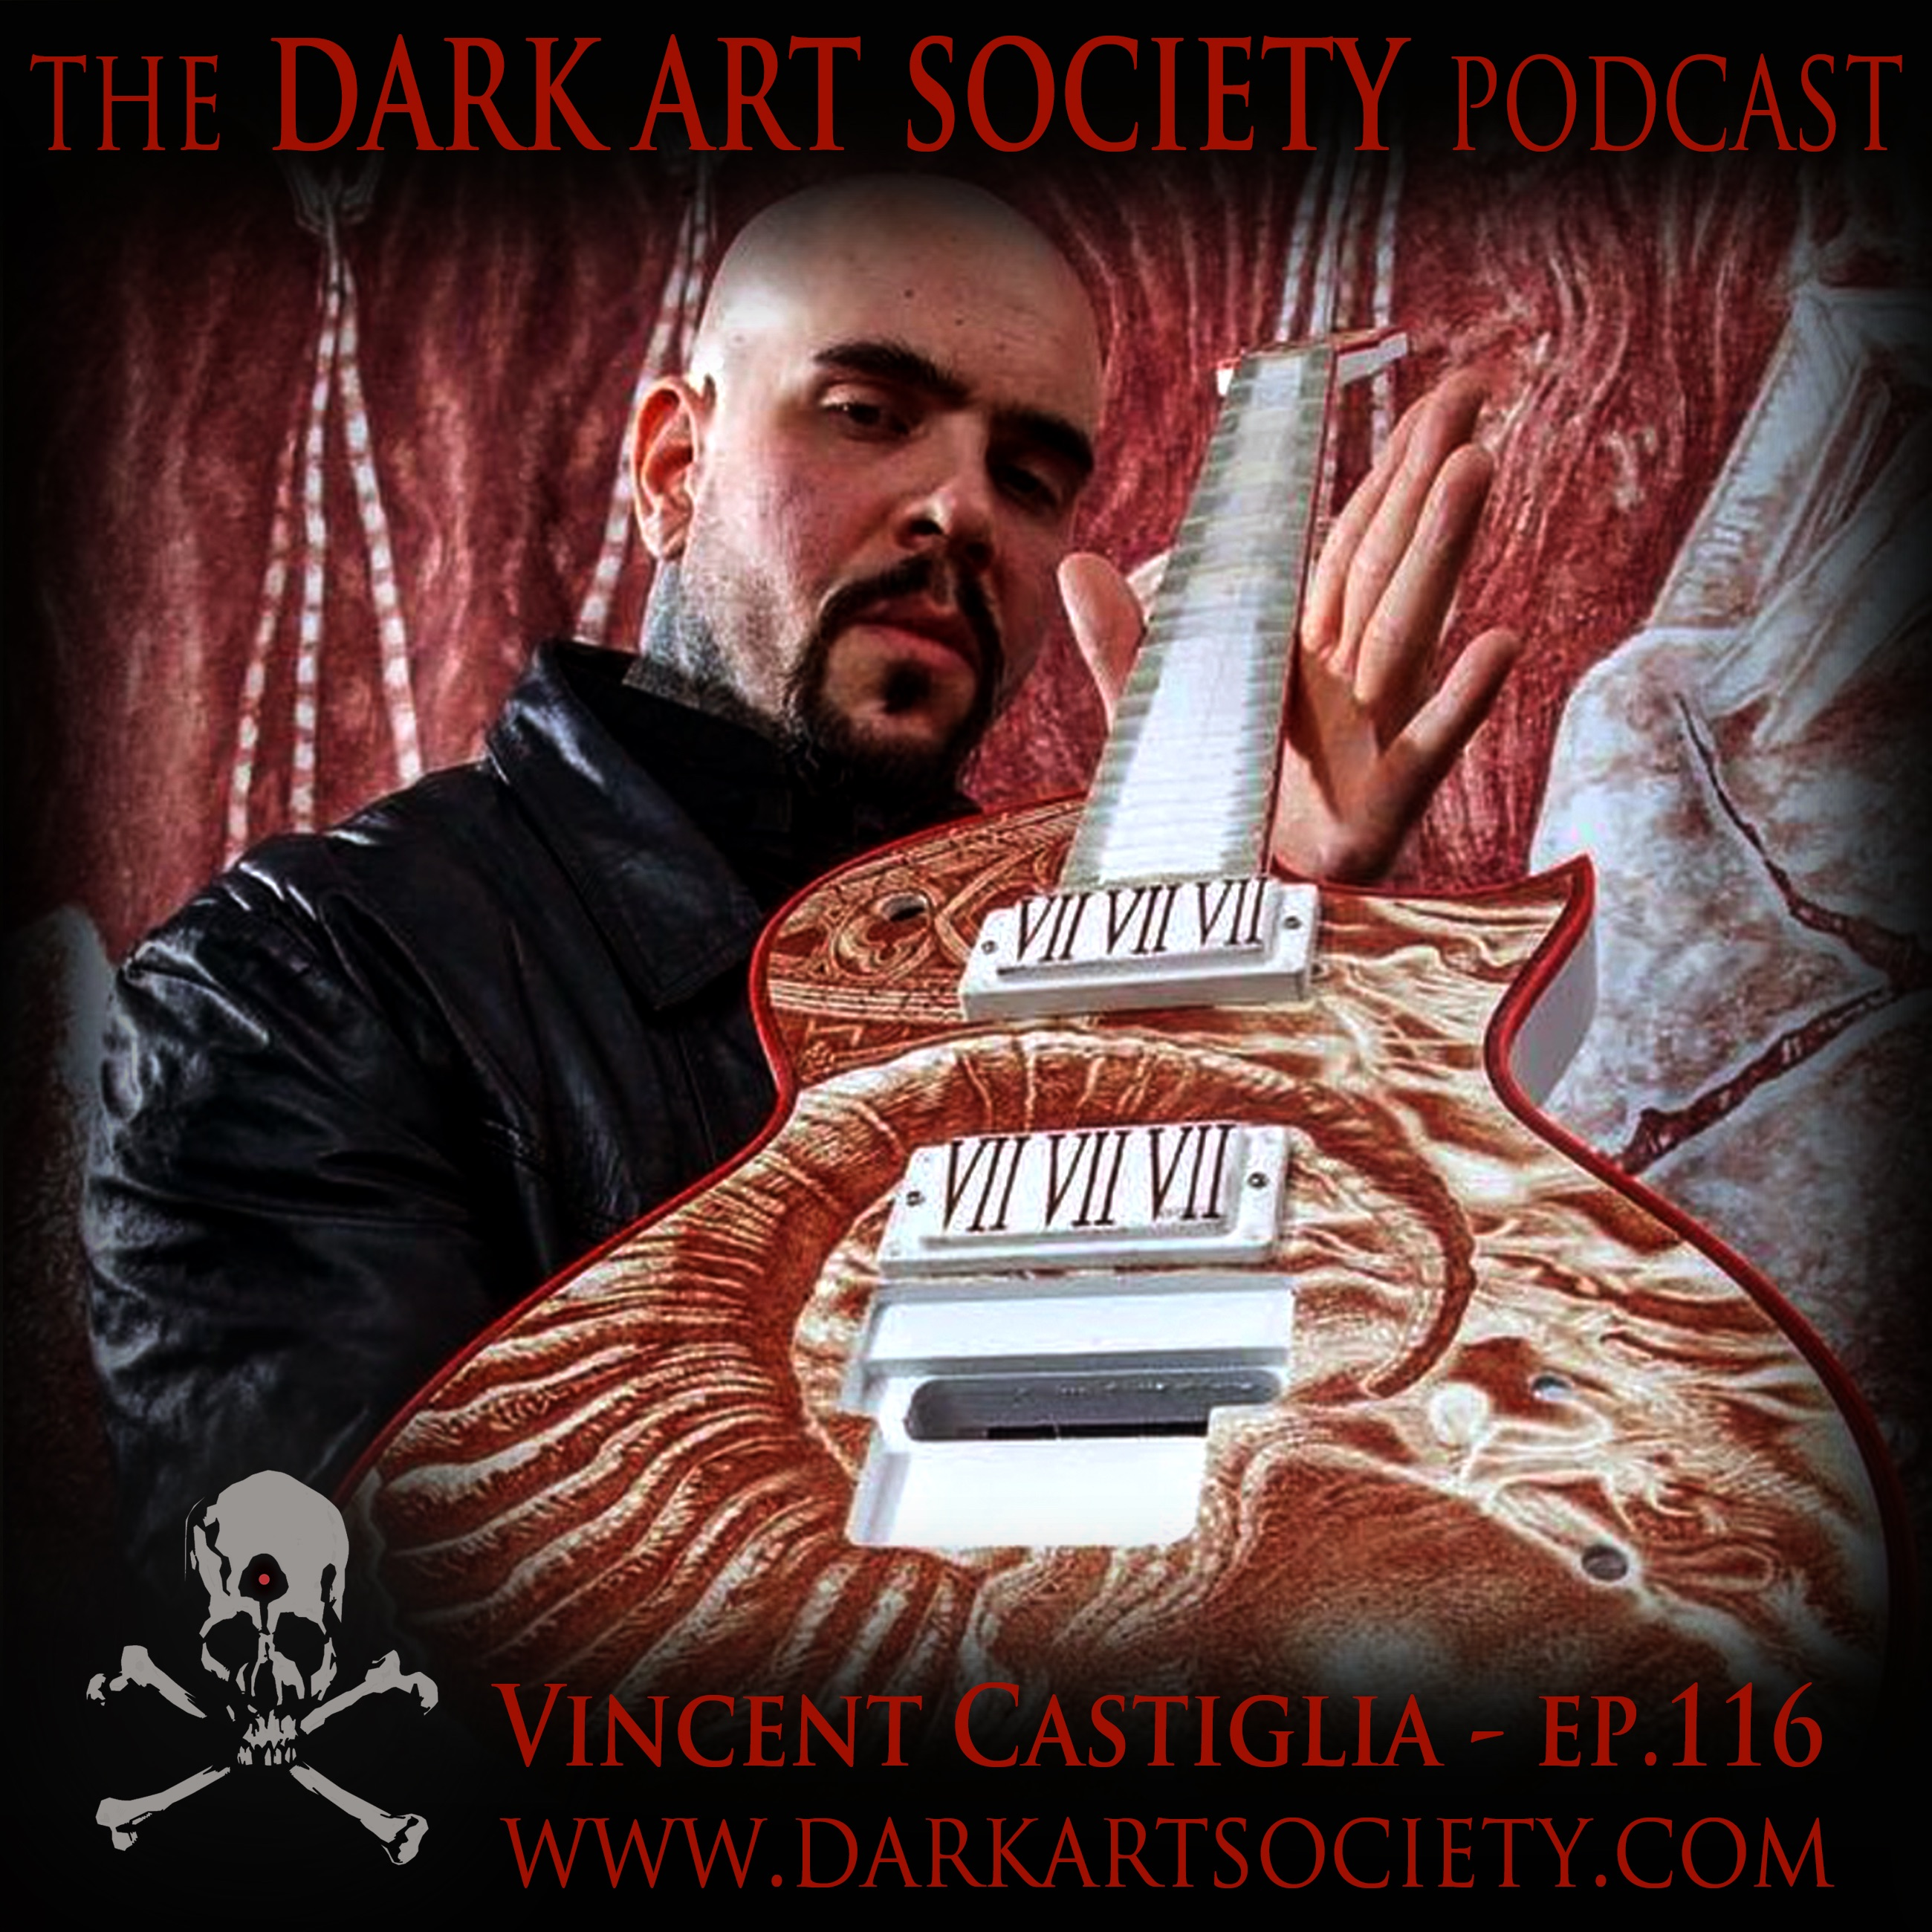 Dark Art Society Podcast | Podbay